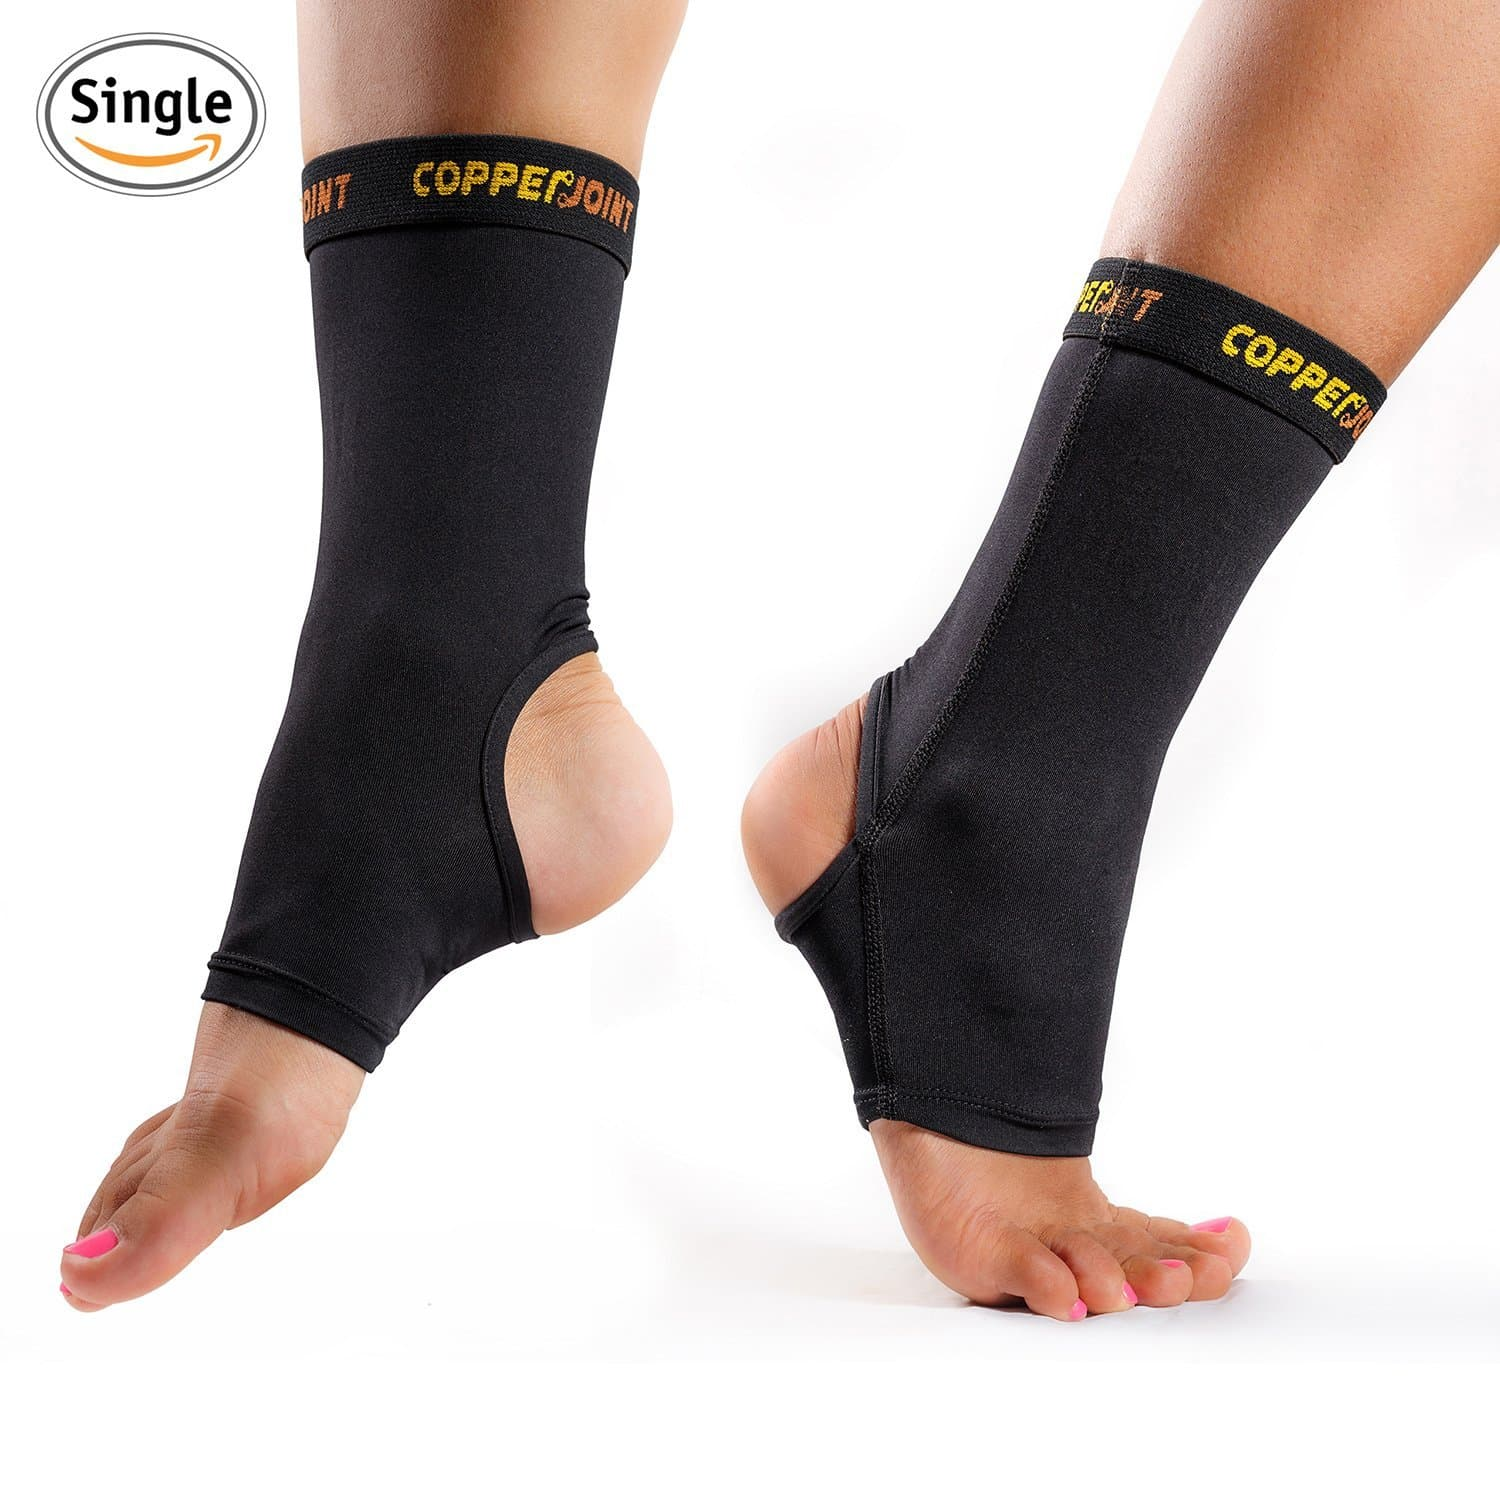 Achilles Tendon Plantar Fasciitis 1 Pair Joint Pain Foot /& Ankle Swelling and More. FJZLIFE Ankle Compression Support Adjustable Lightweight Ankle Brace for Injury Recovery